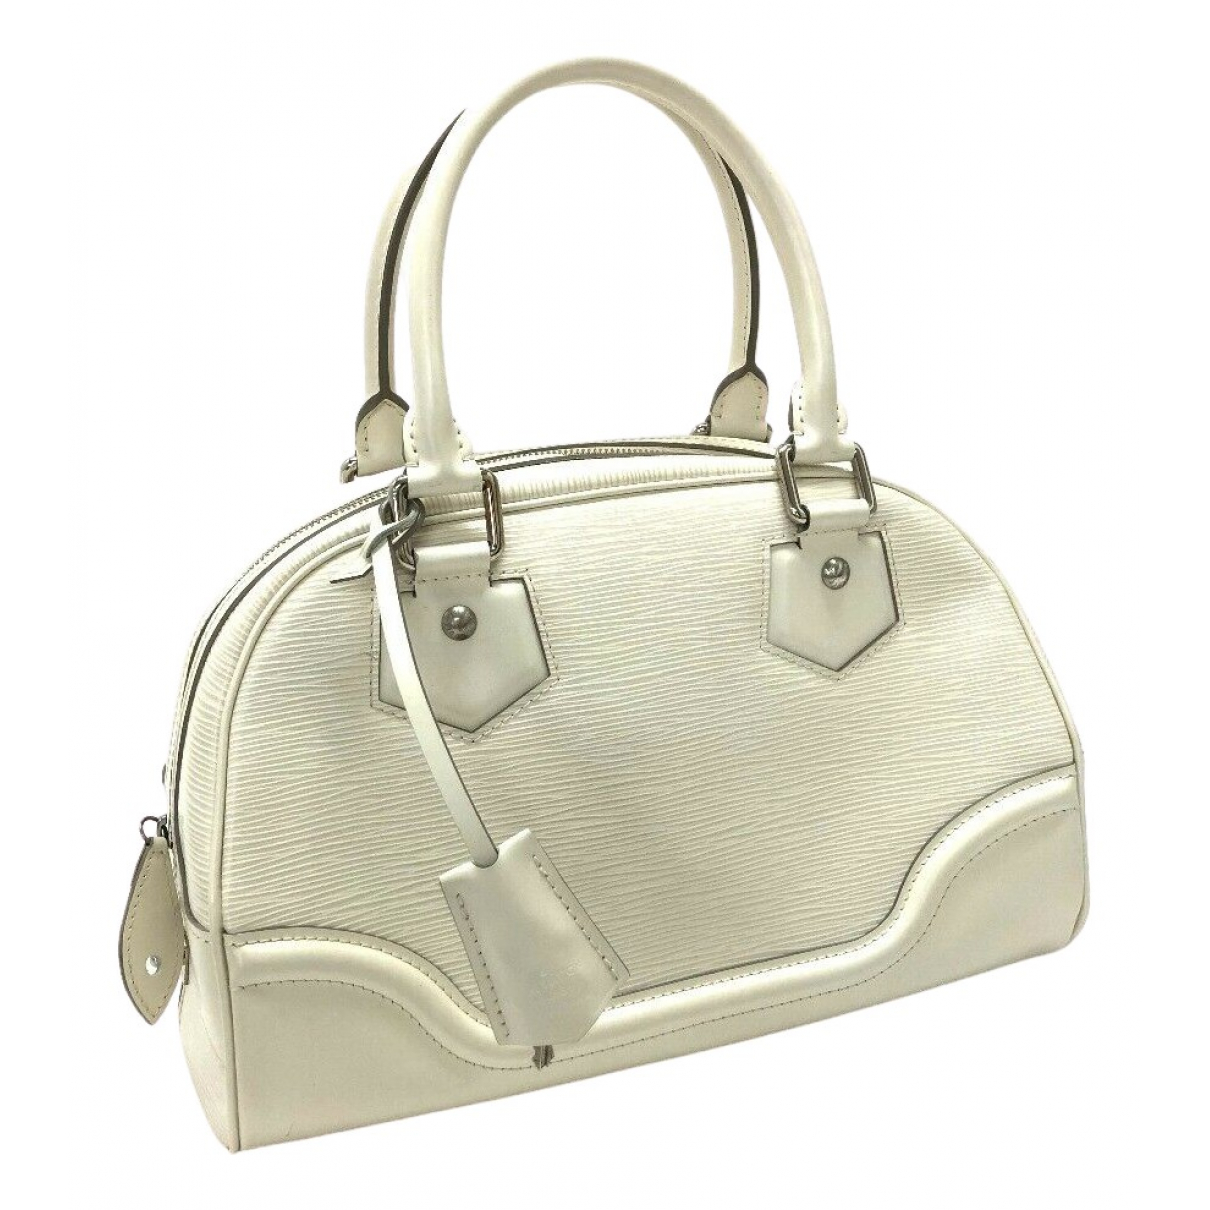 Louis Vuitton Montaigne Vintage  Handtasche in  Weiss Leder